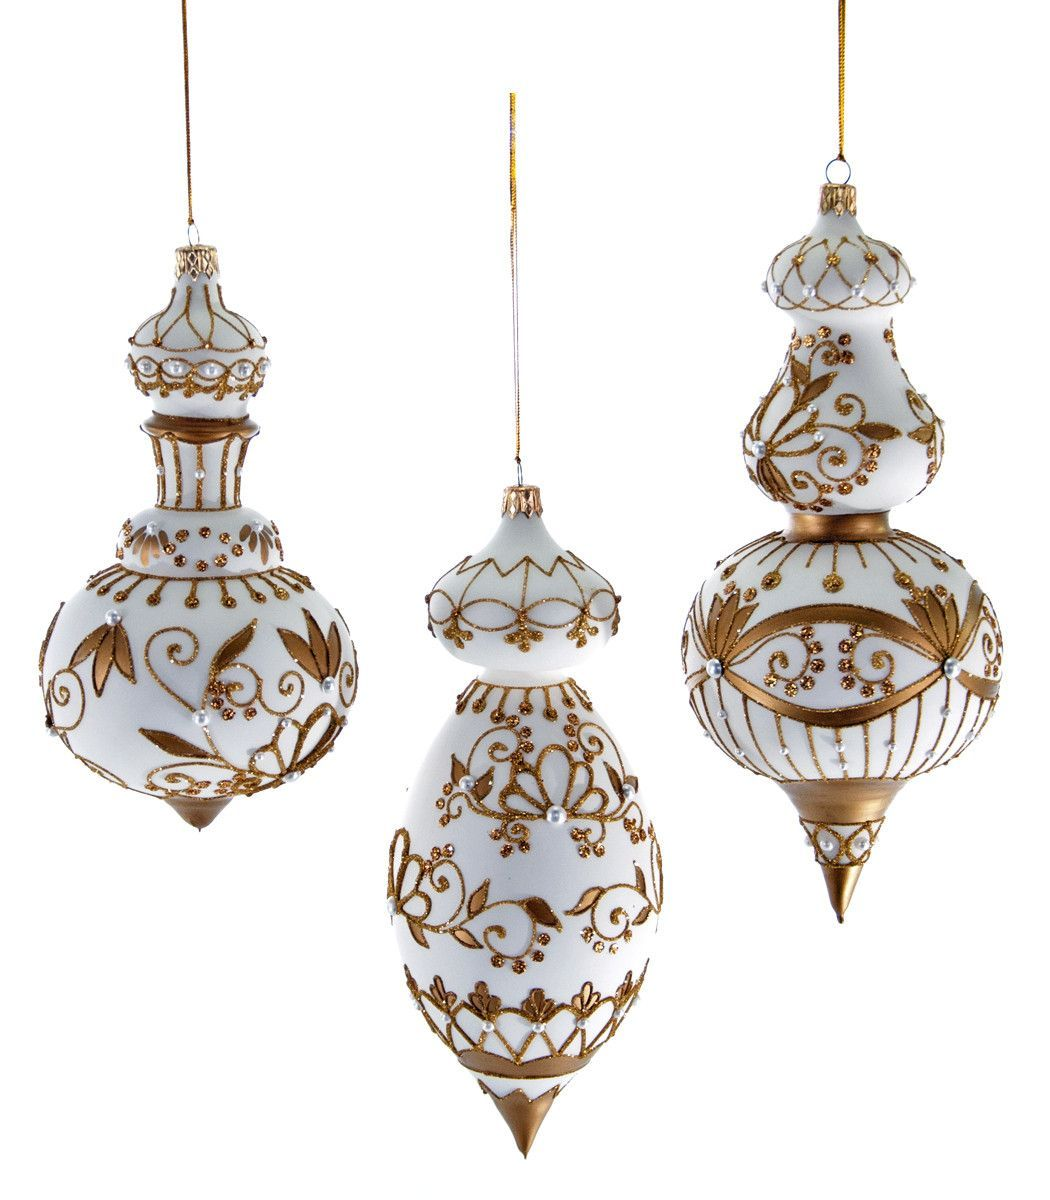 katherines collection royal white christmas collection set six assorted 95 jeweled white gold cupola glass ornaments free ship - White And Gold Christmas Ornaments